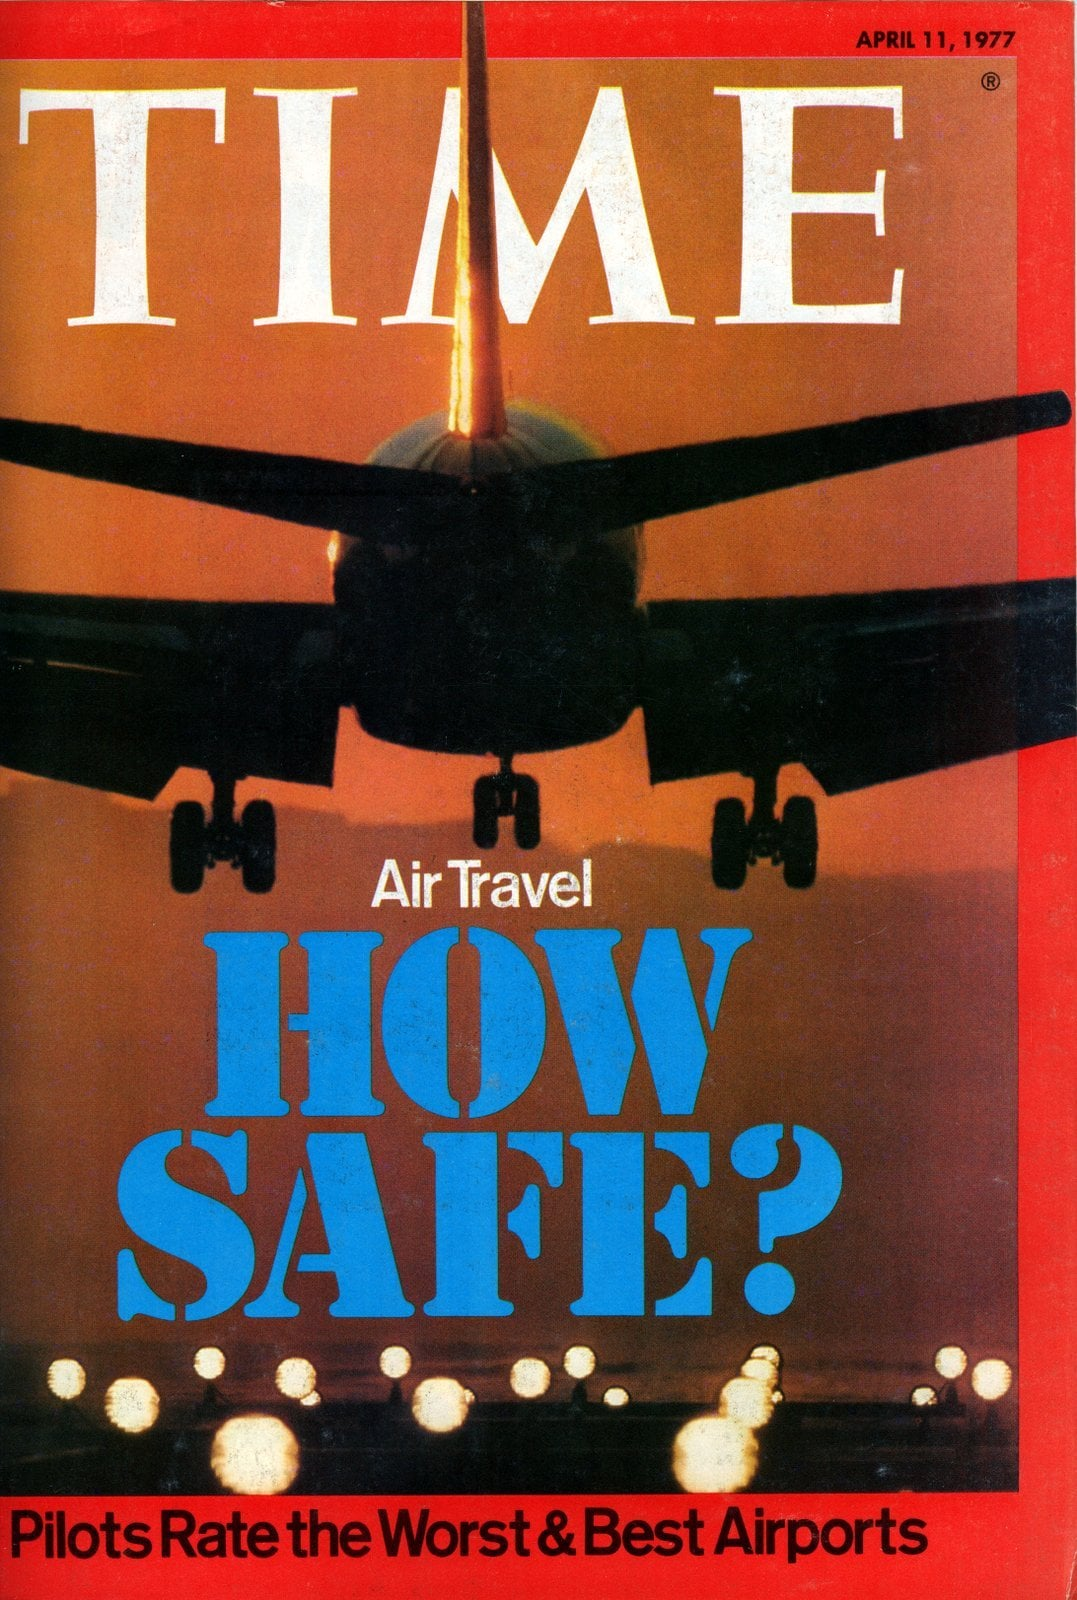 Airline safety and the Boeing 747 jumbo jet (1977) - Time